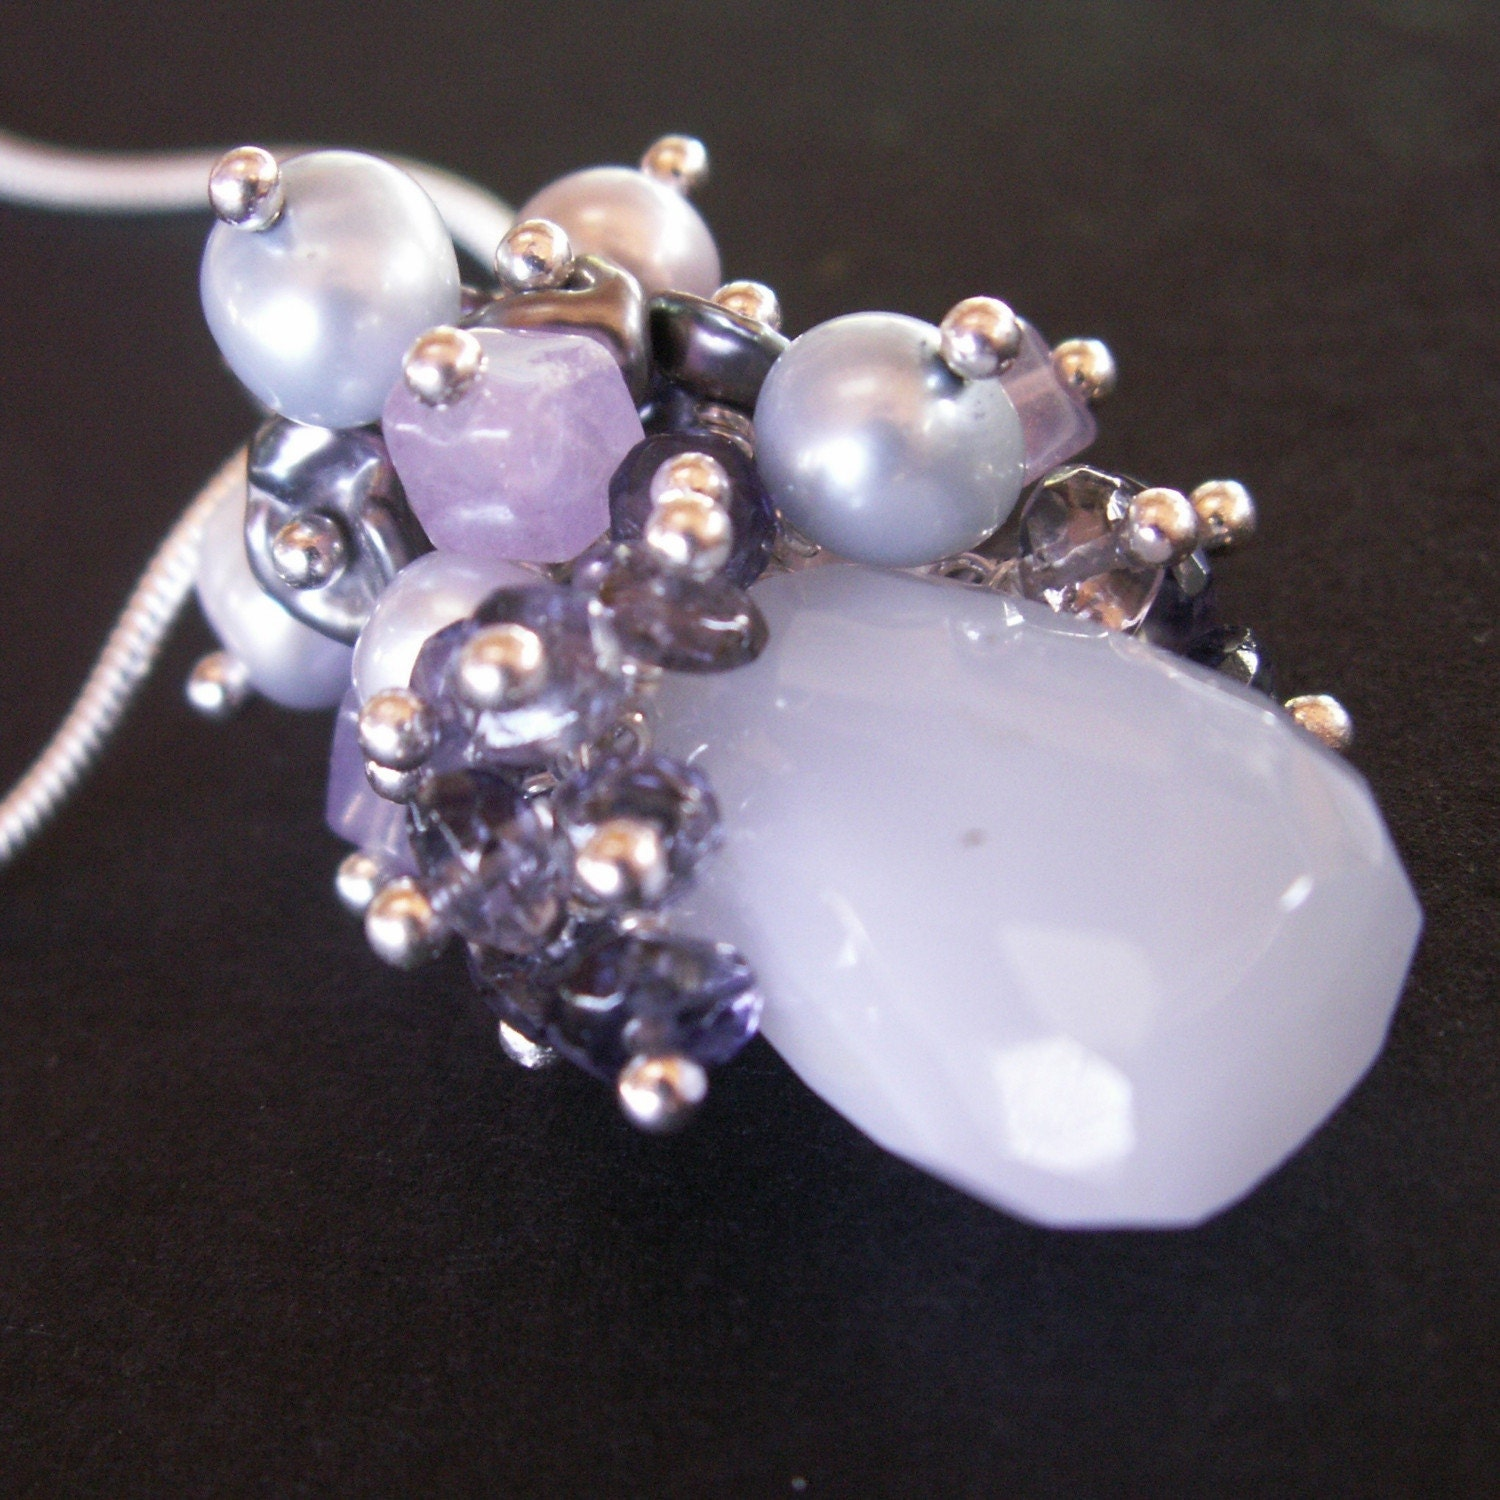 jewelry necklace chalcedony blue nugget iolite lavender pearls fluorite